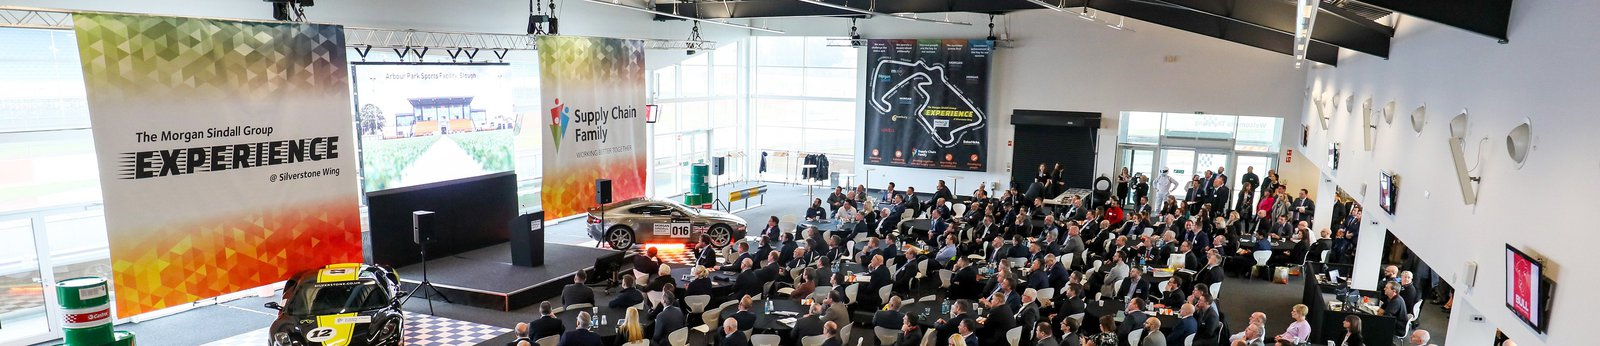 Image of Morgan Sindall Group supply chain event